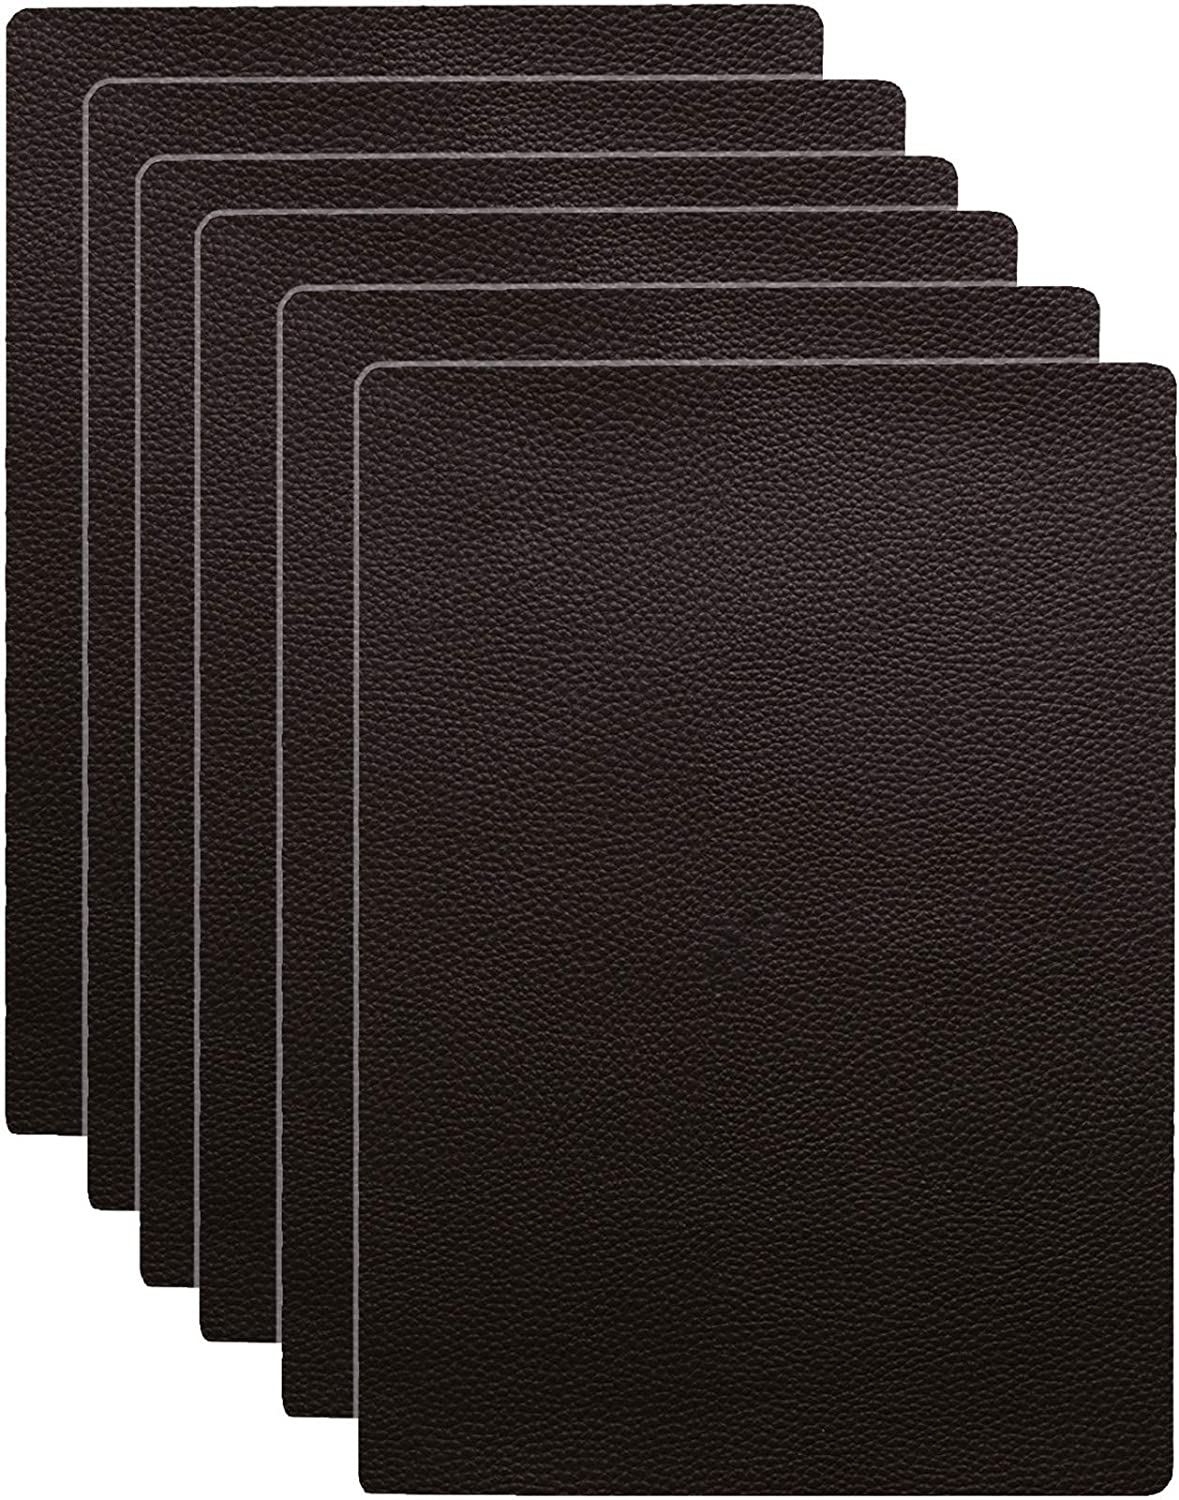 Nicunom 6 Pack PU Leather Repair Patch, 11 x 8 Inch Self-Adhesive Couch Patch Leather Repair Kit for Sofas, Furnitures, Car Seats, Couch, Hand Bags, Jackets, Brown